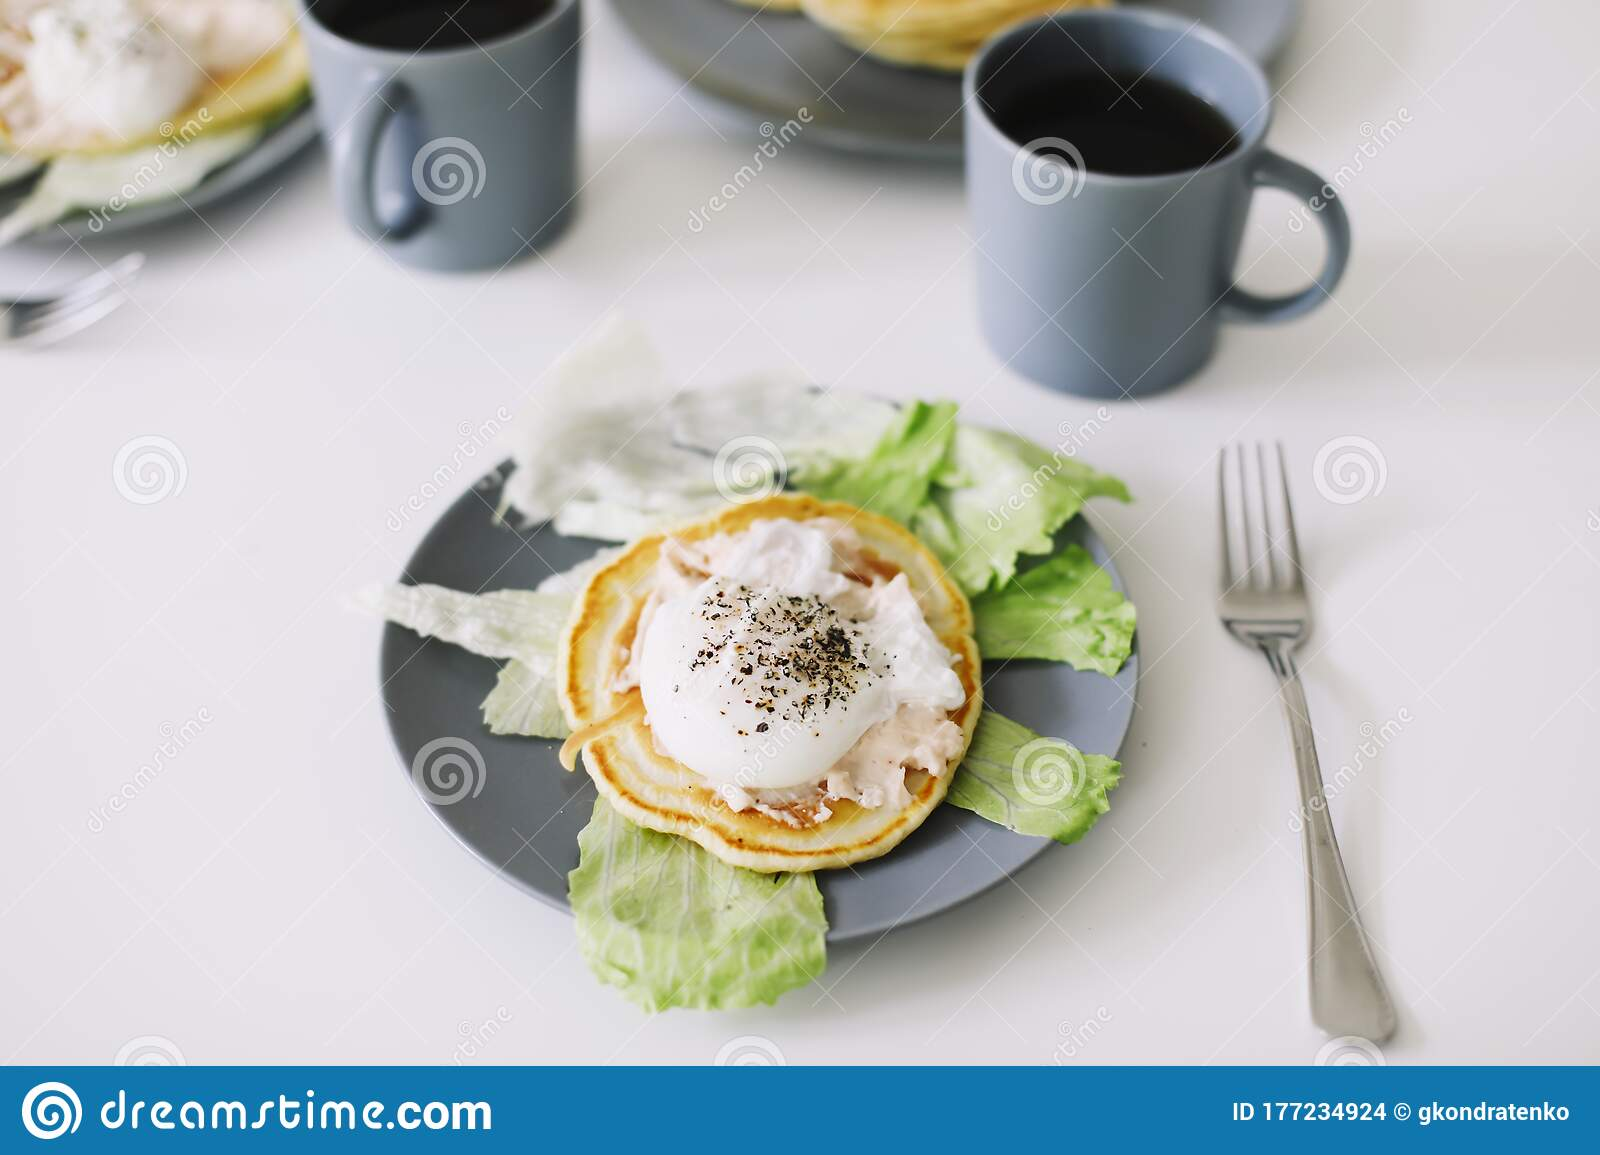 Healthy Nutritious Tasty Breakfast Pancakes Poached Egg On Ceramic Plate And Coffee Cup Table Setting Food Photo Good Morning Stock Photo Image Of Food Fresh 177234924